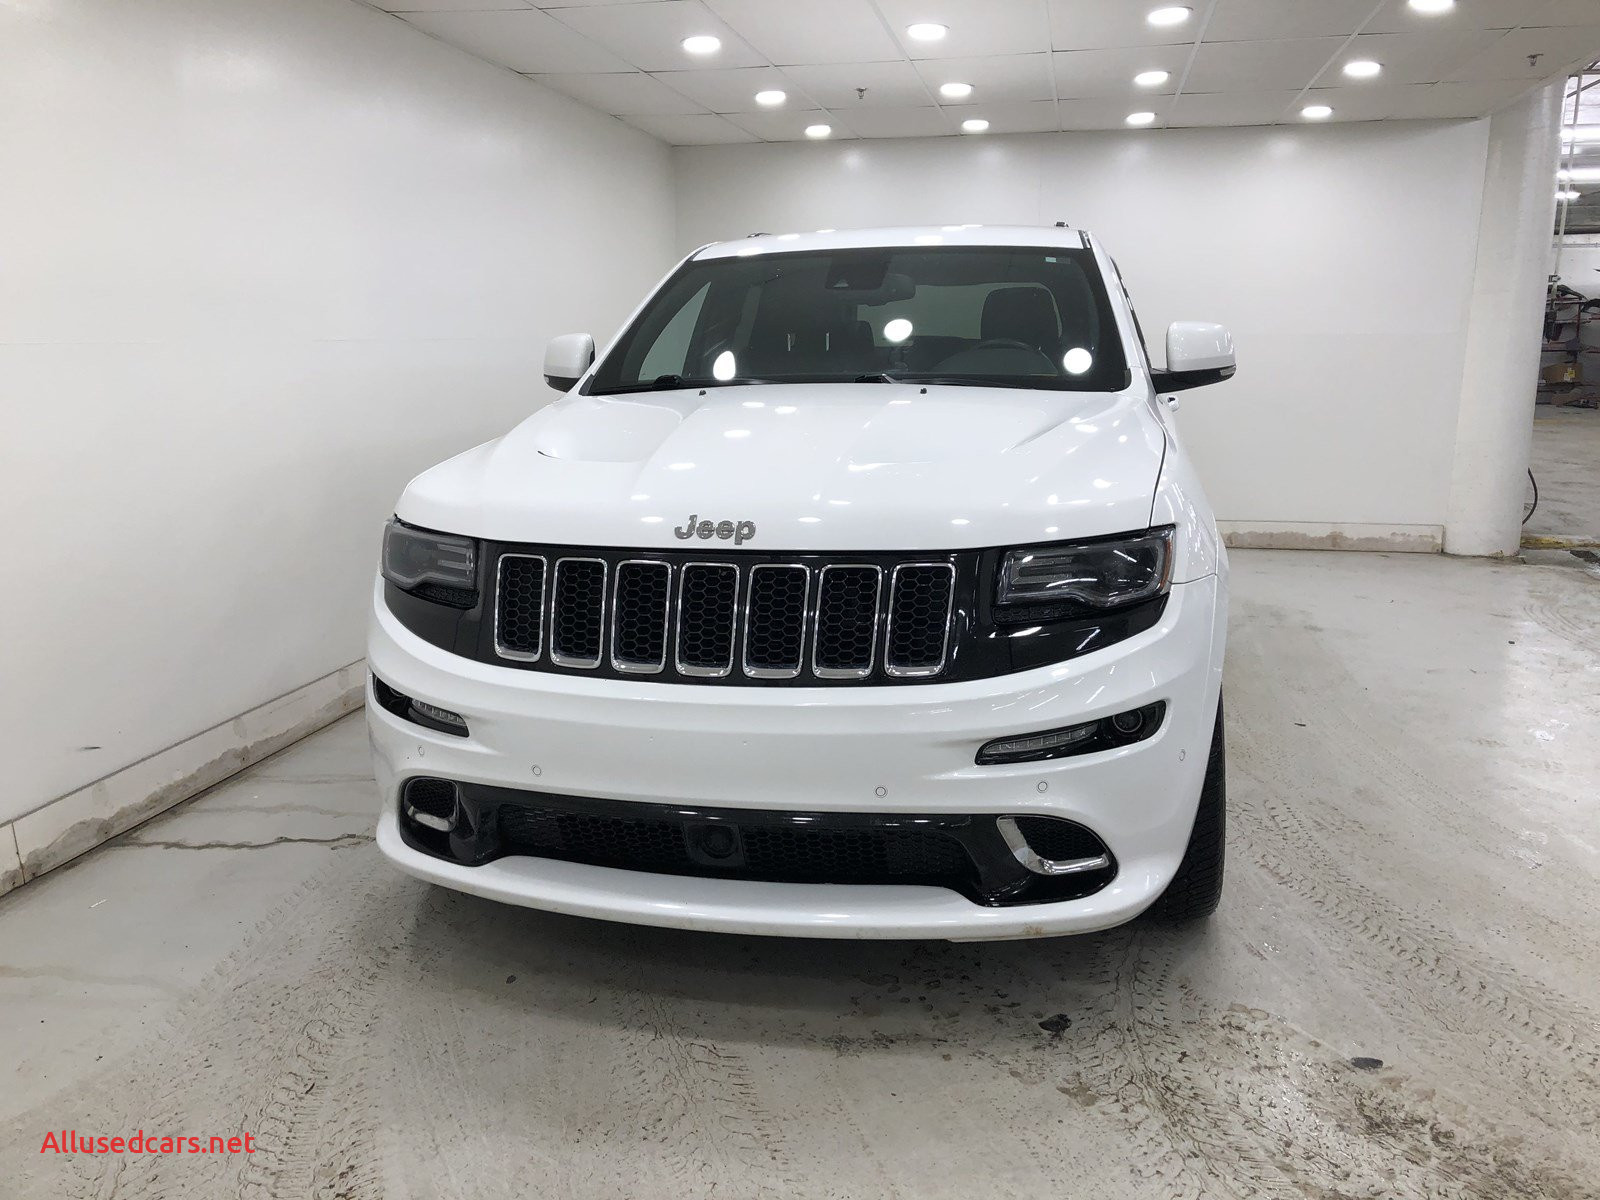 Jeep Grand Cherokee Srt8 Best Of Pre Owned 2014 Jeep Grand Cherokee Srt8 4wd Sport Utility